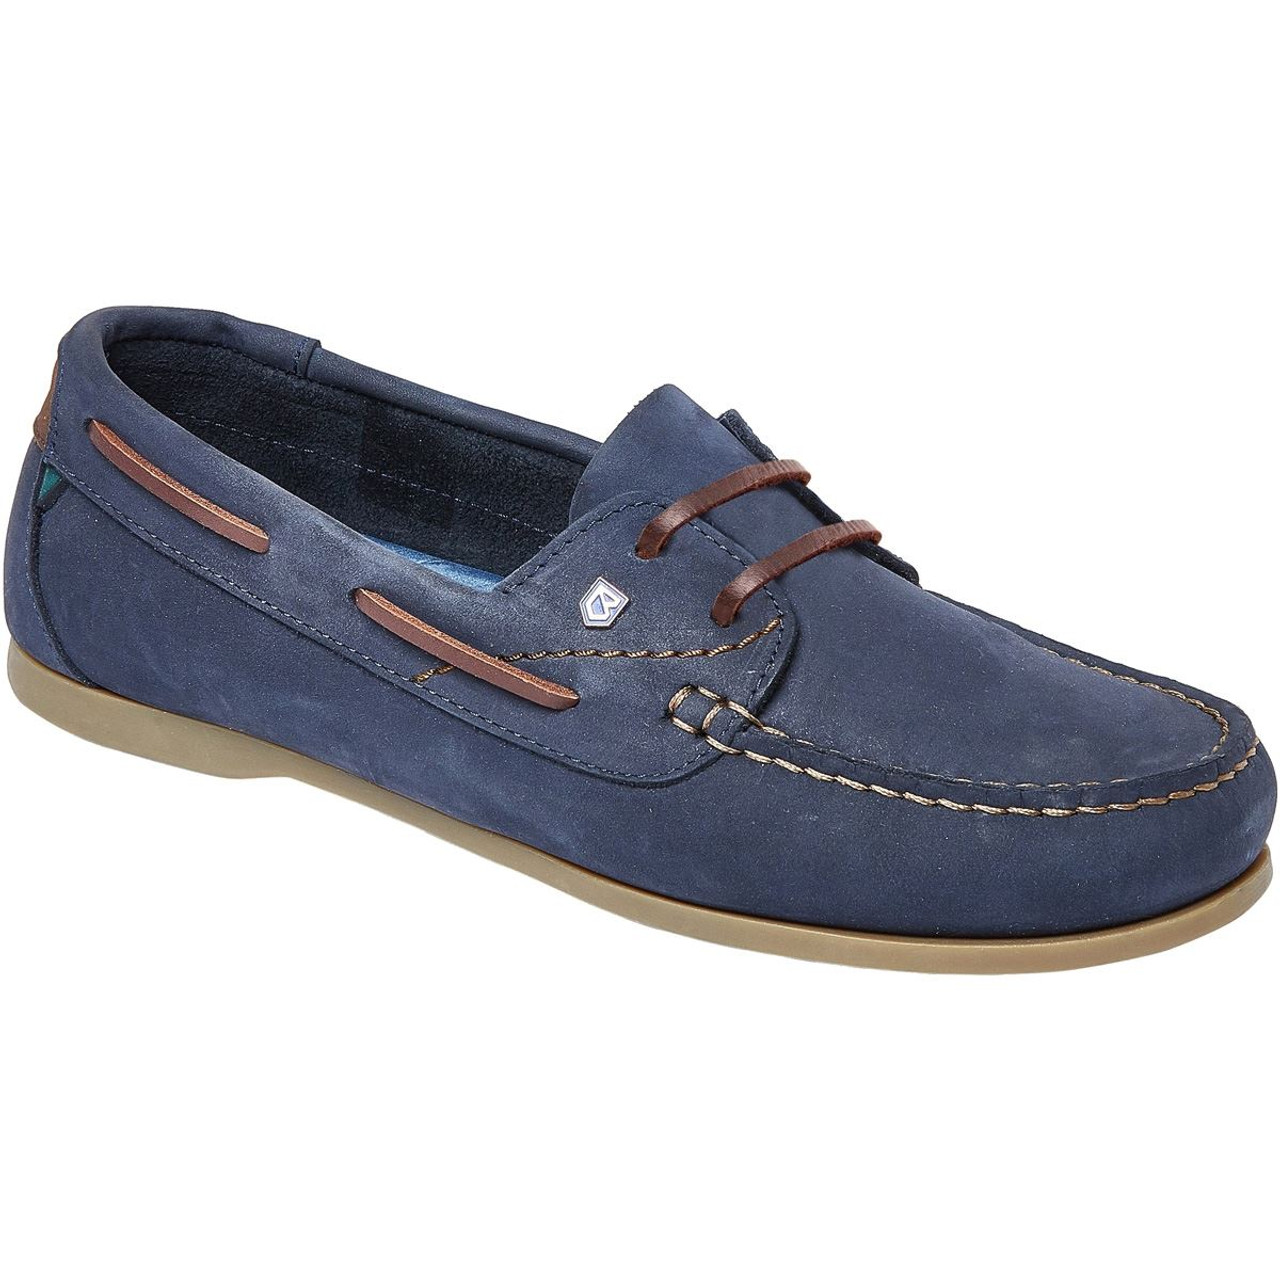 Dubarry Aruba Deck Shoes